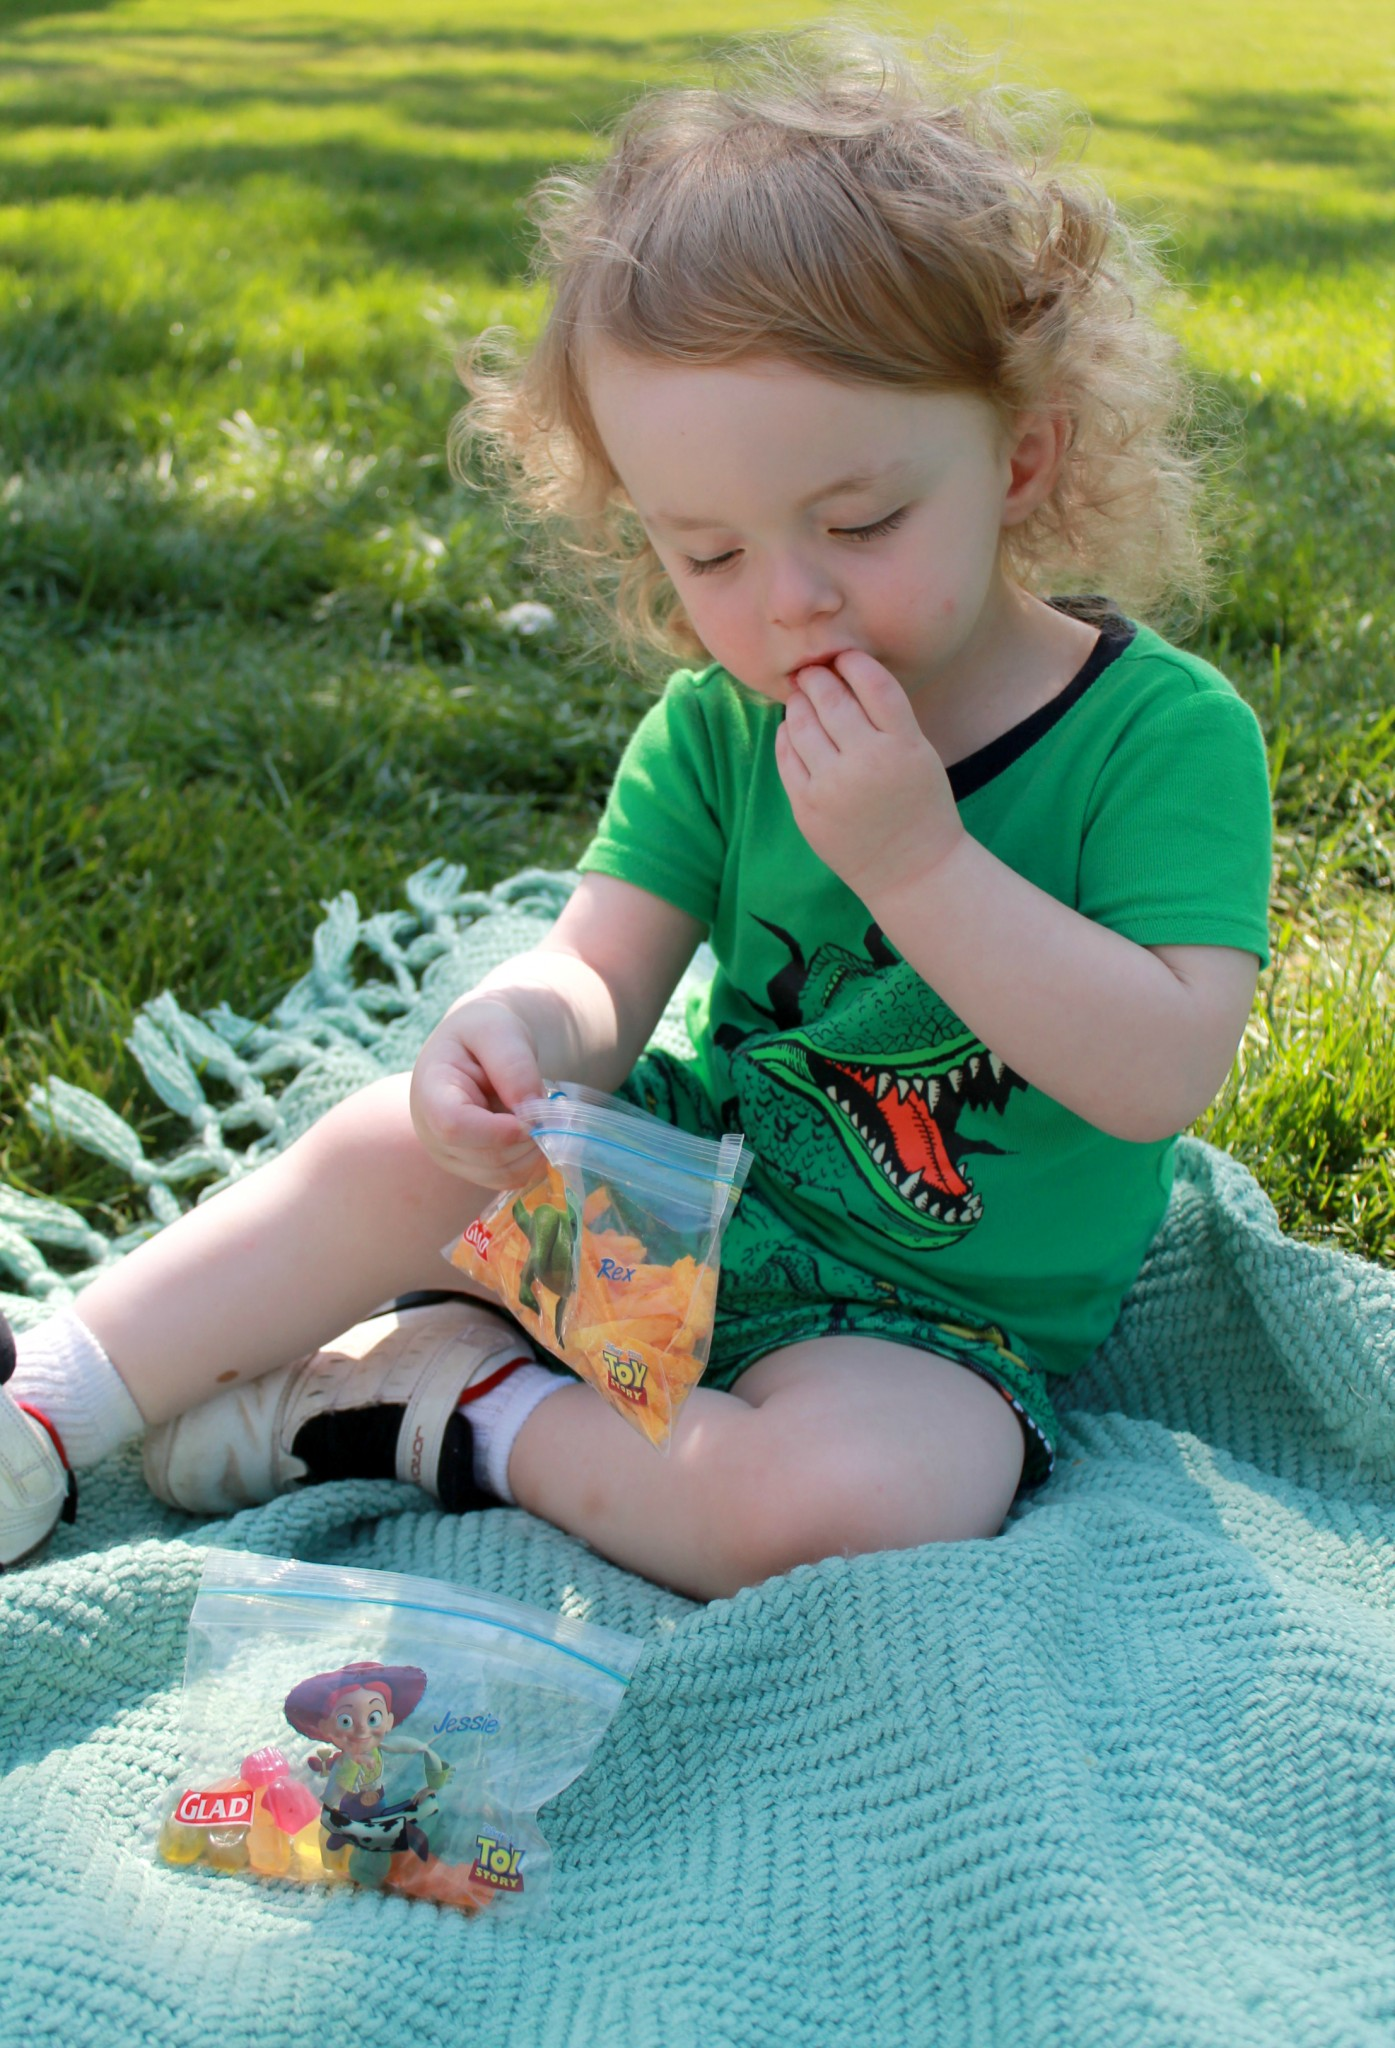 Tips for having a stress-free family picnic